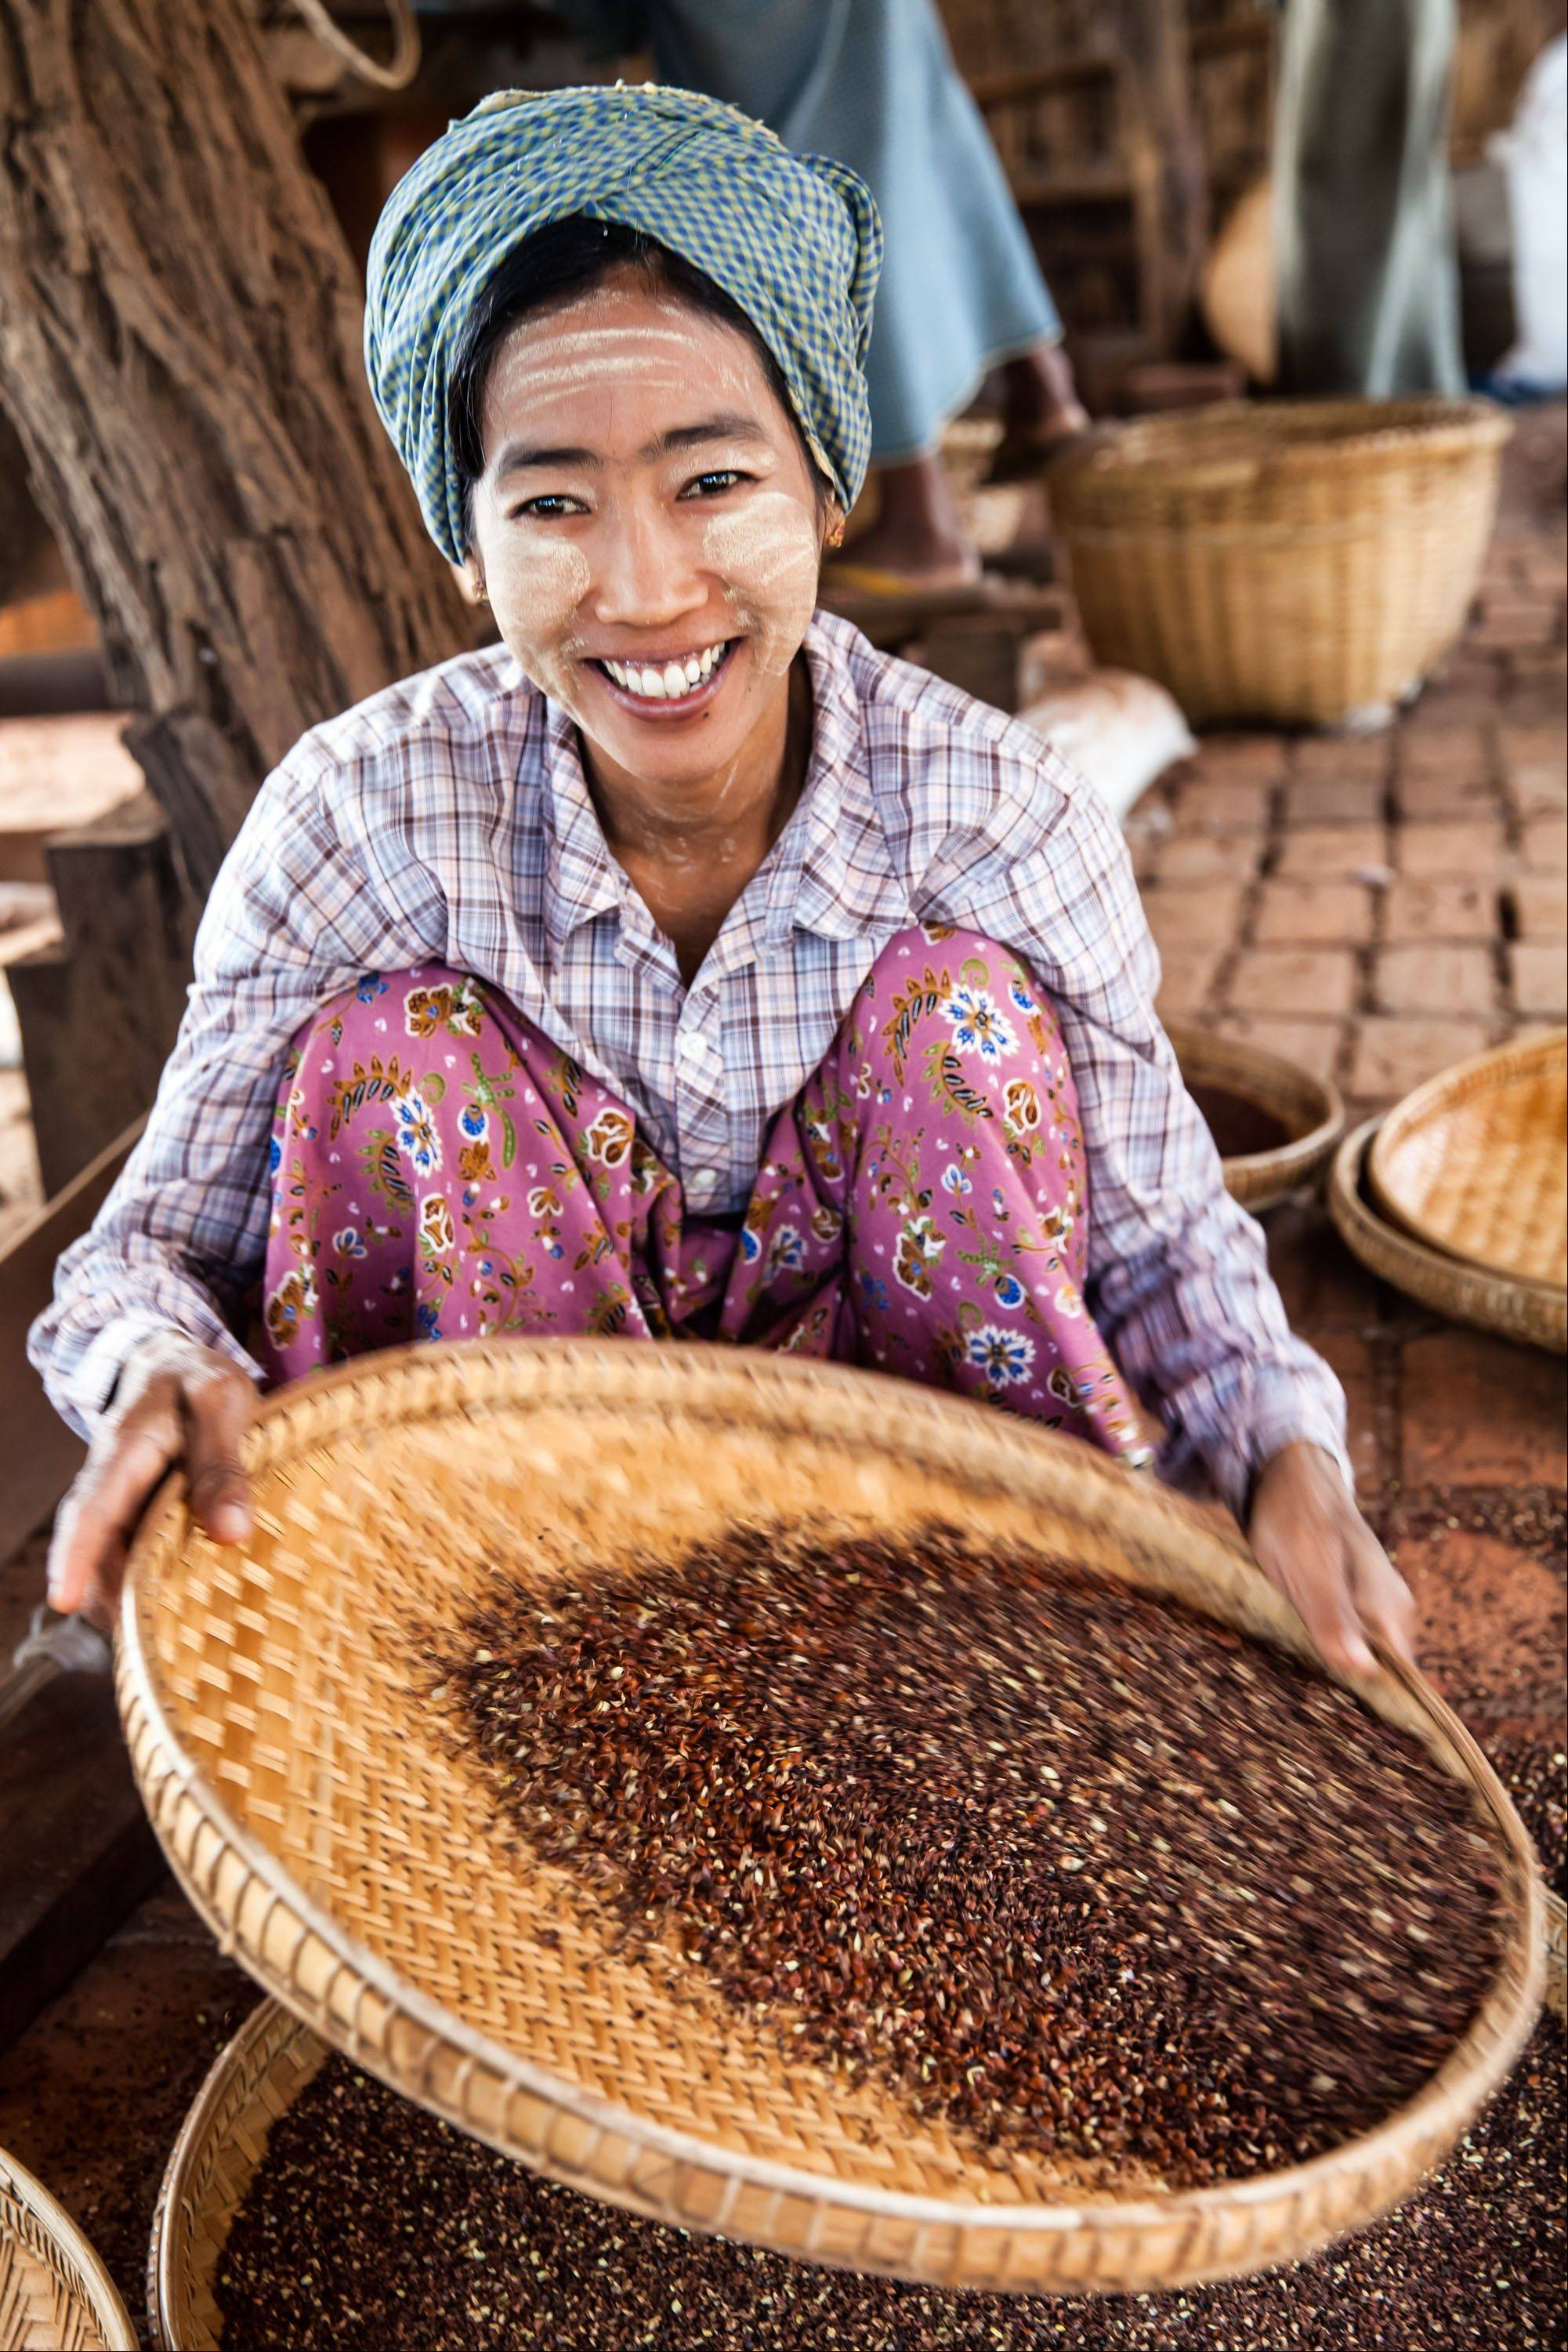 A woman sifts plum seeds used in the manufacture of herbal heart medicine, in Phwarsaw Village in Bagan, Myanmar.